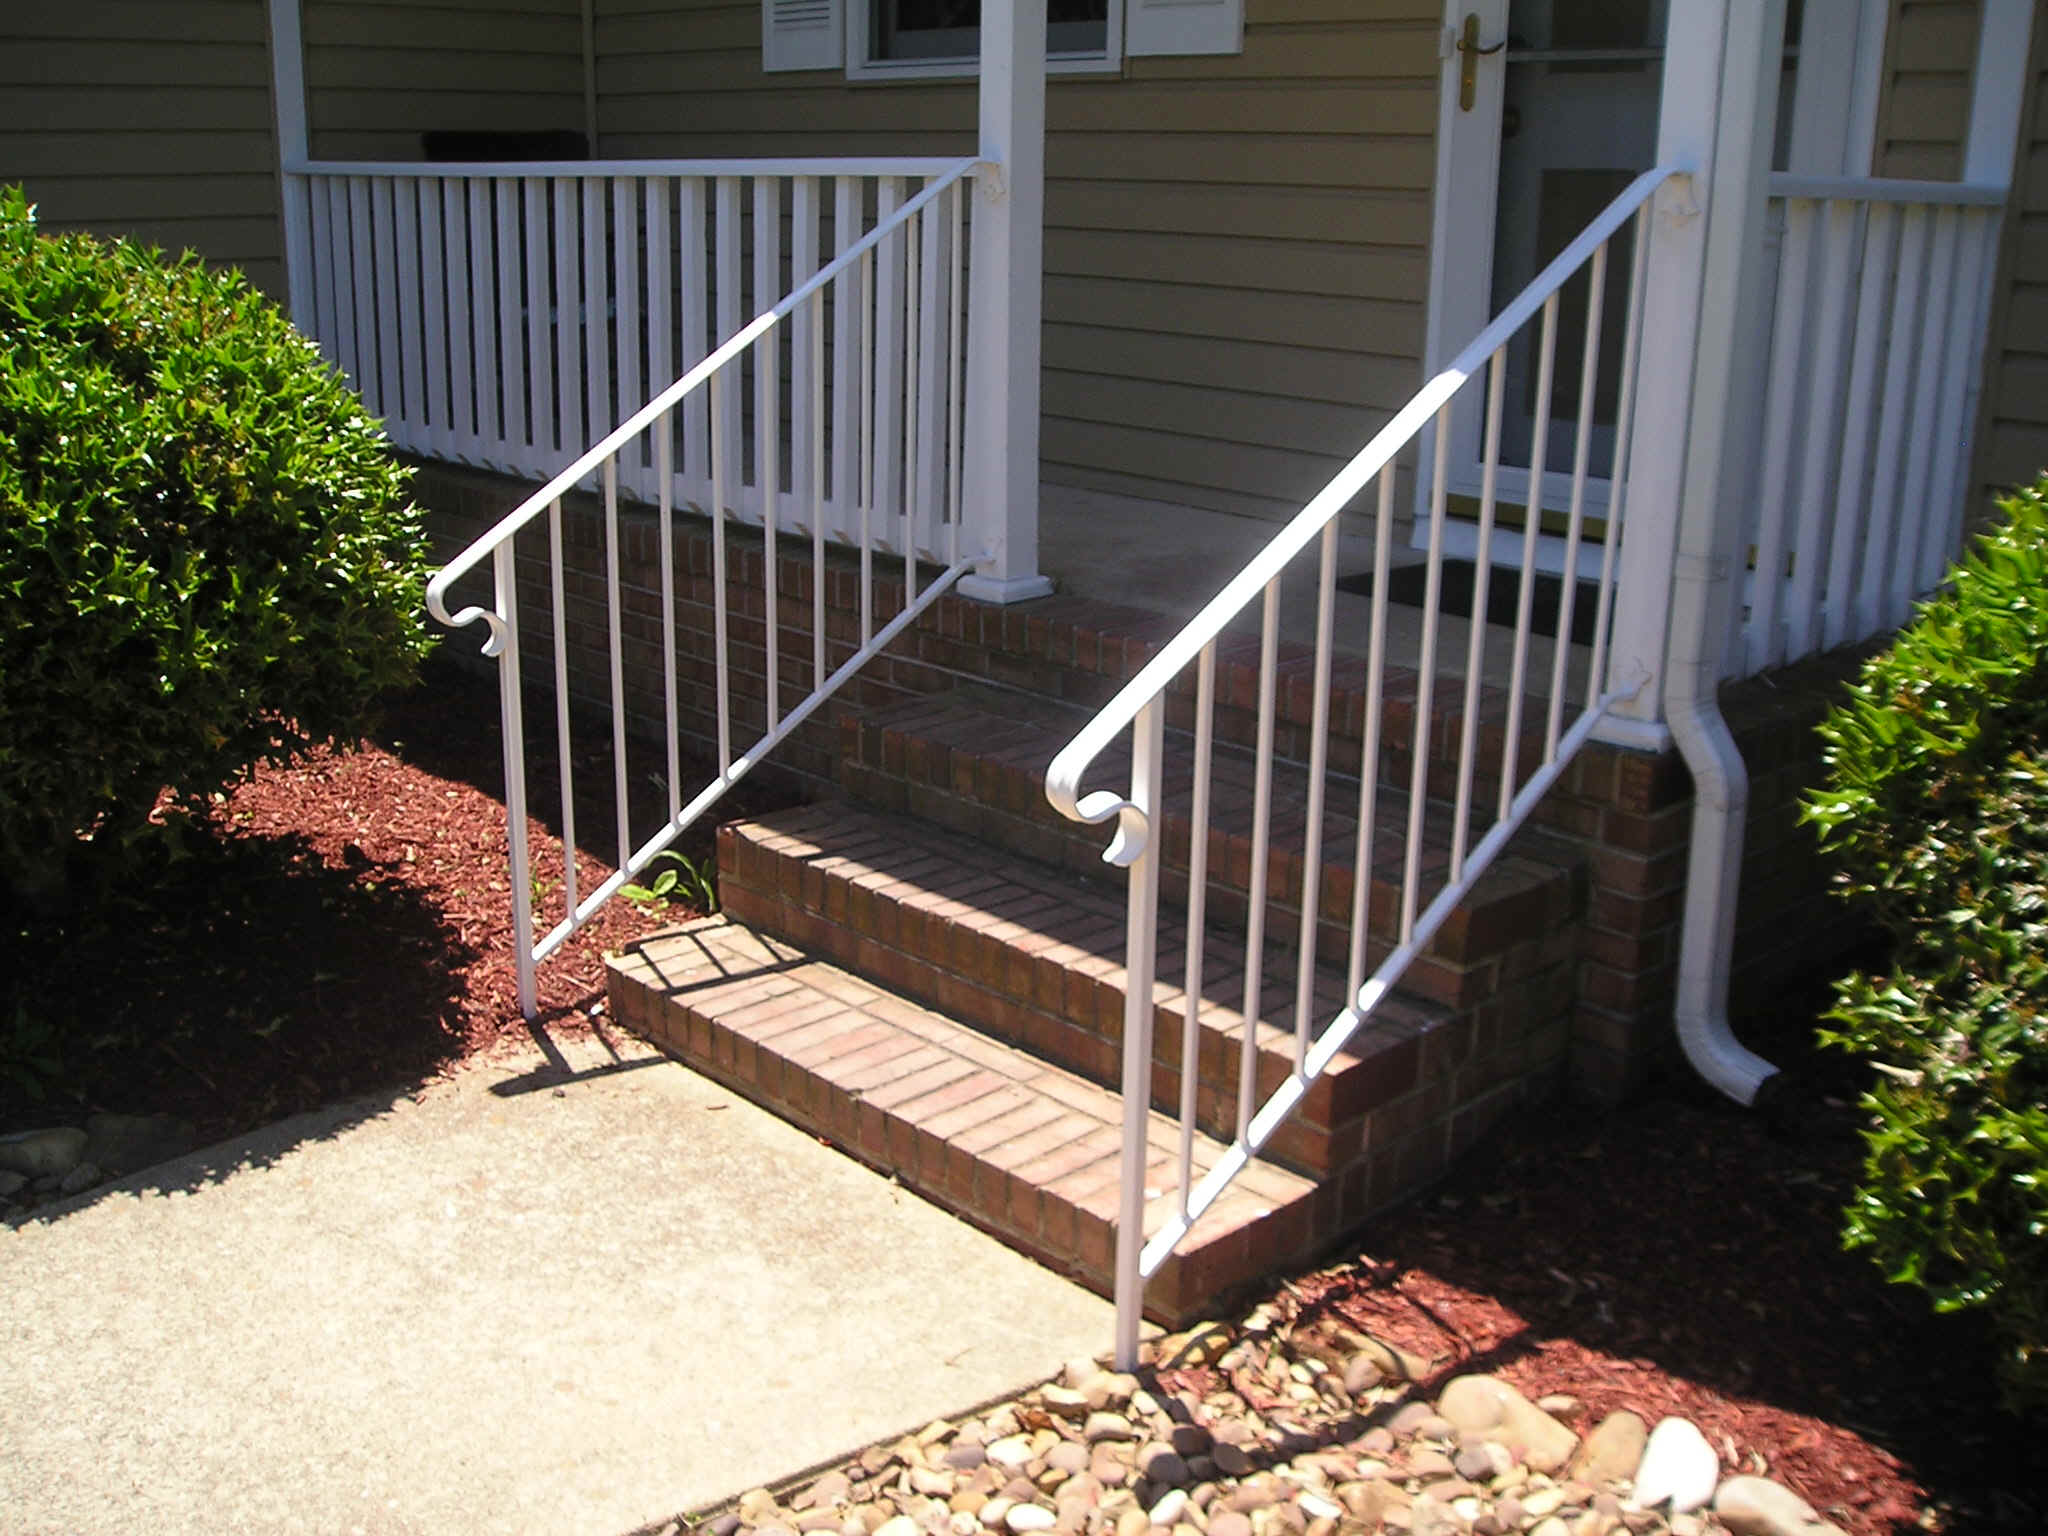 repair and matching of exisiting railings